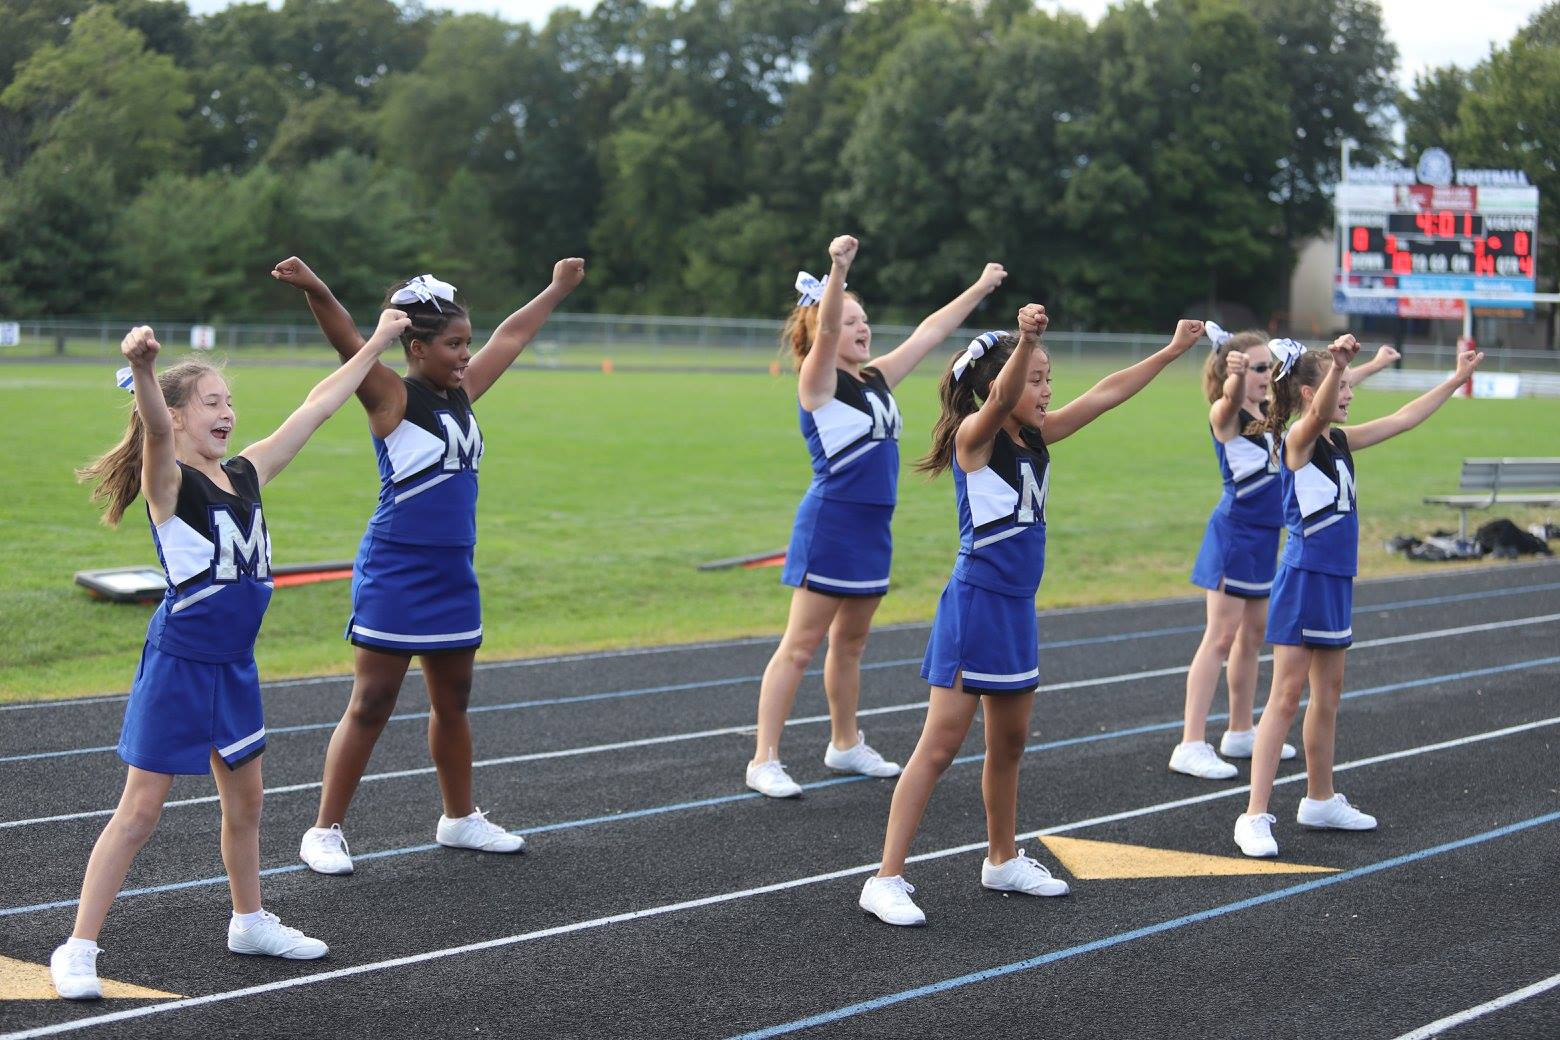 Girls 7th Grade Sideline Cheer · Sep 11 BMS Cheer: 7th grade vs Hilliard  Memorial at MHS Stadium-9/6/2017